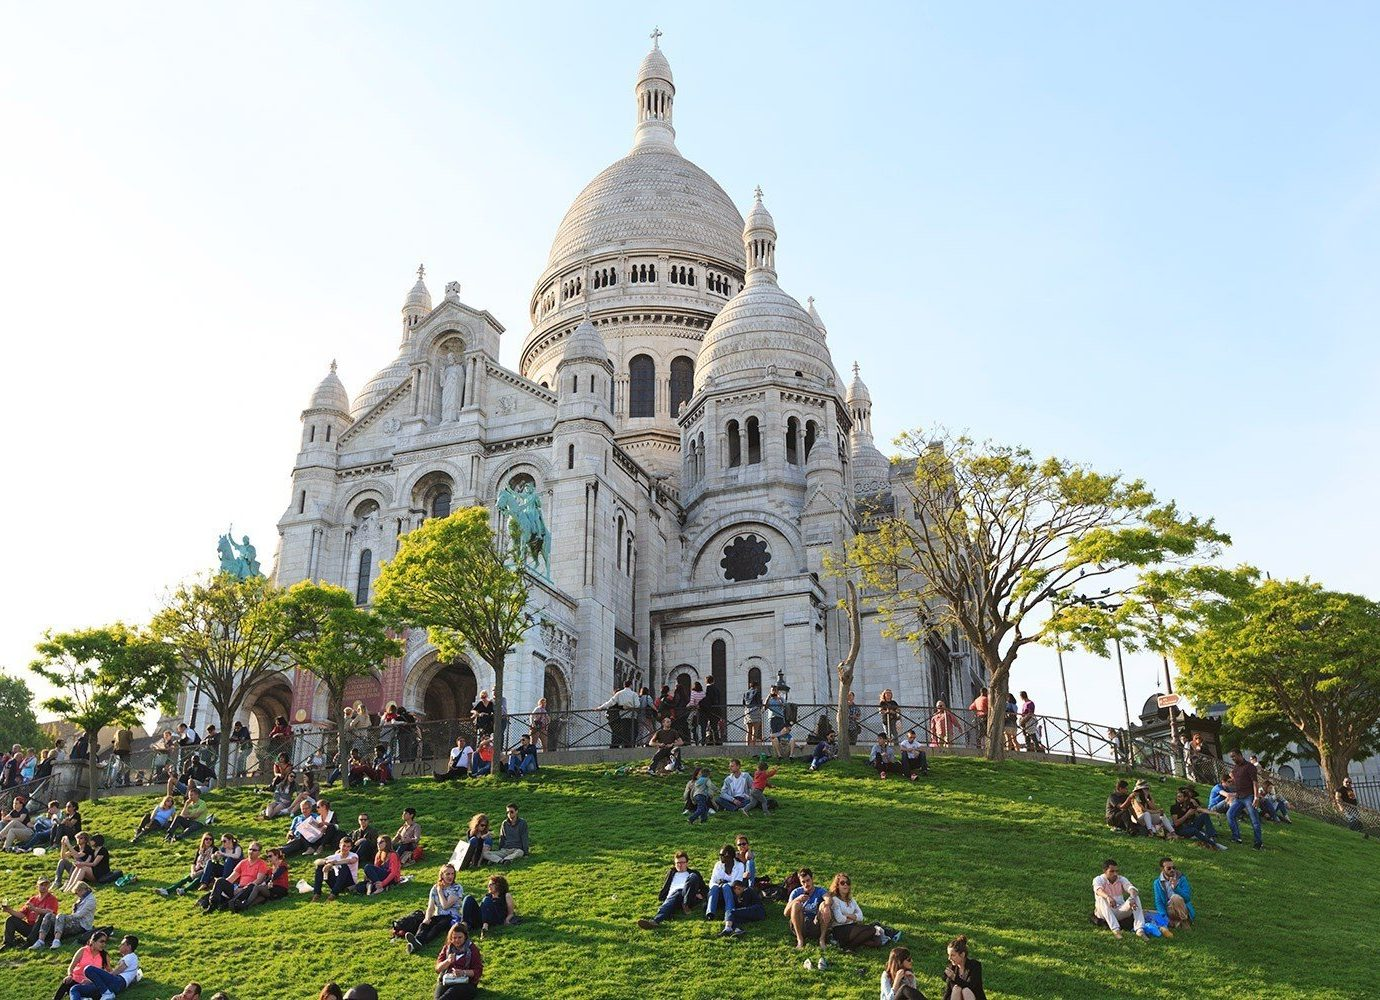 Trip Ideas grass outdoor sky park field building historic site landmark place of worship lawn tourism Church people government building cathedral palace grassy day stone